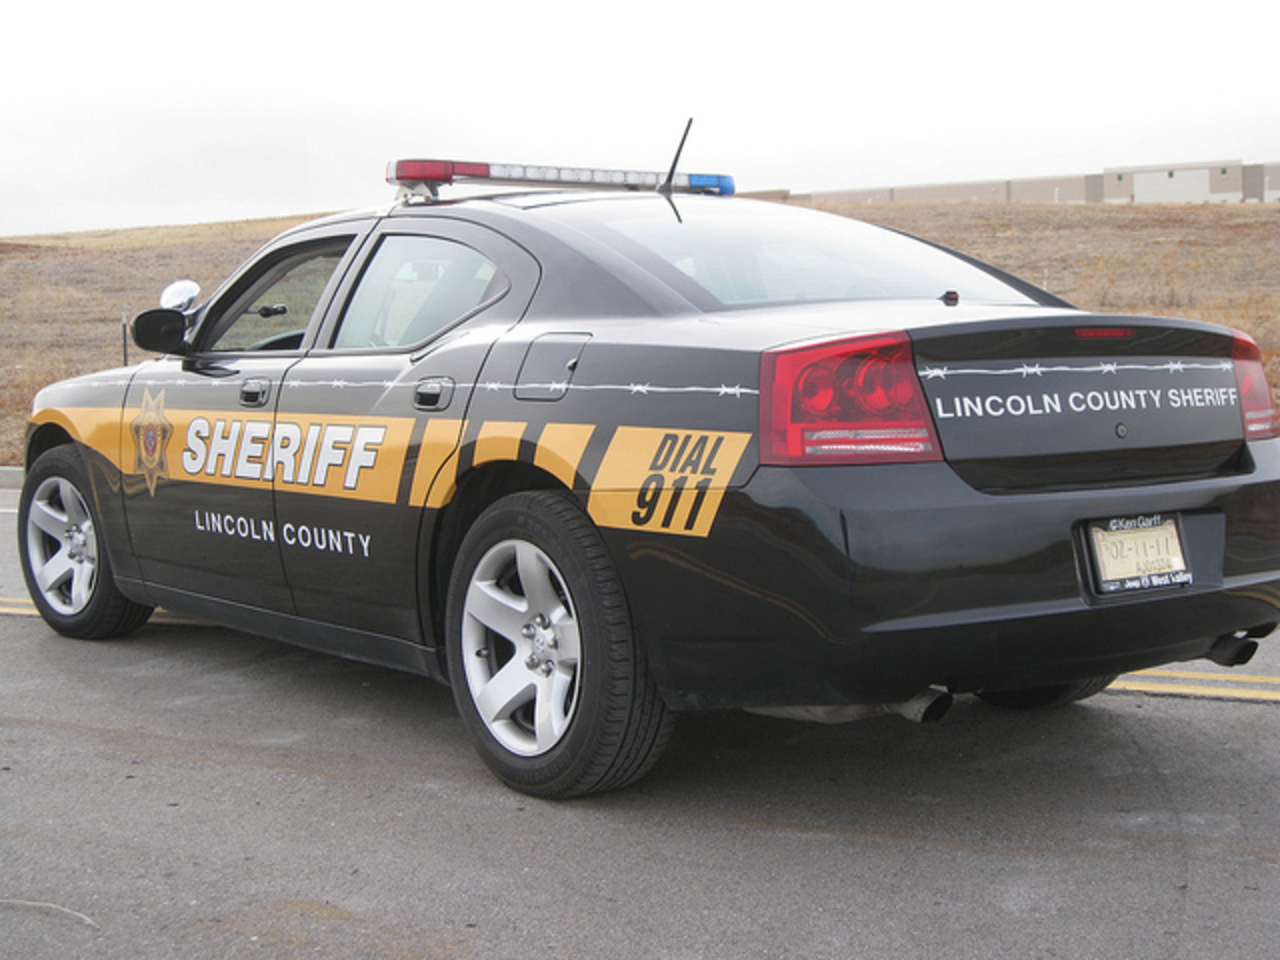 Lincoln County Sheriff Dodge Charger (Colorado) | Flickr - Photo ...